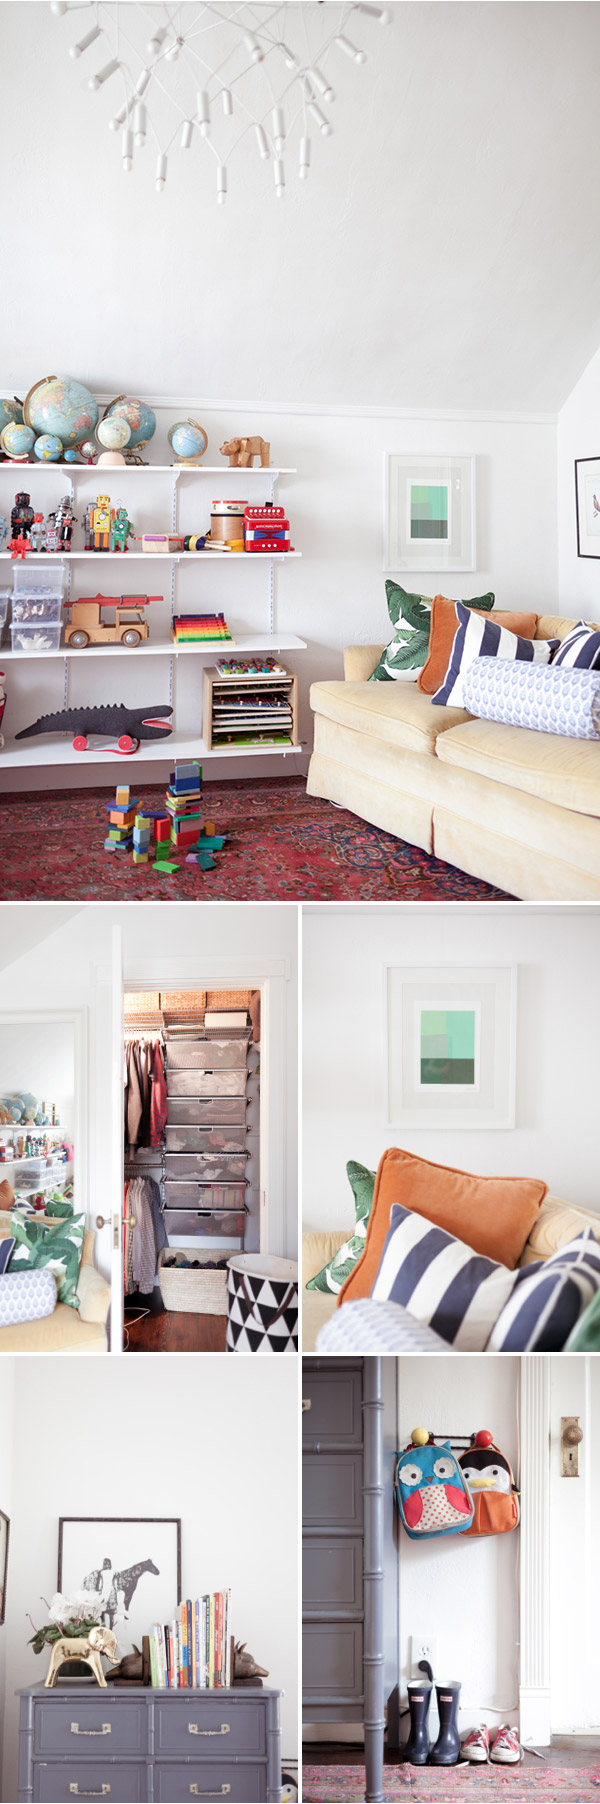 Our 500 Sq Ft Apartment: The Kids Room